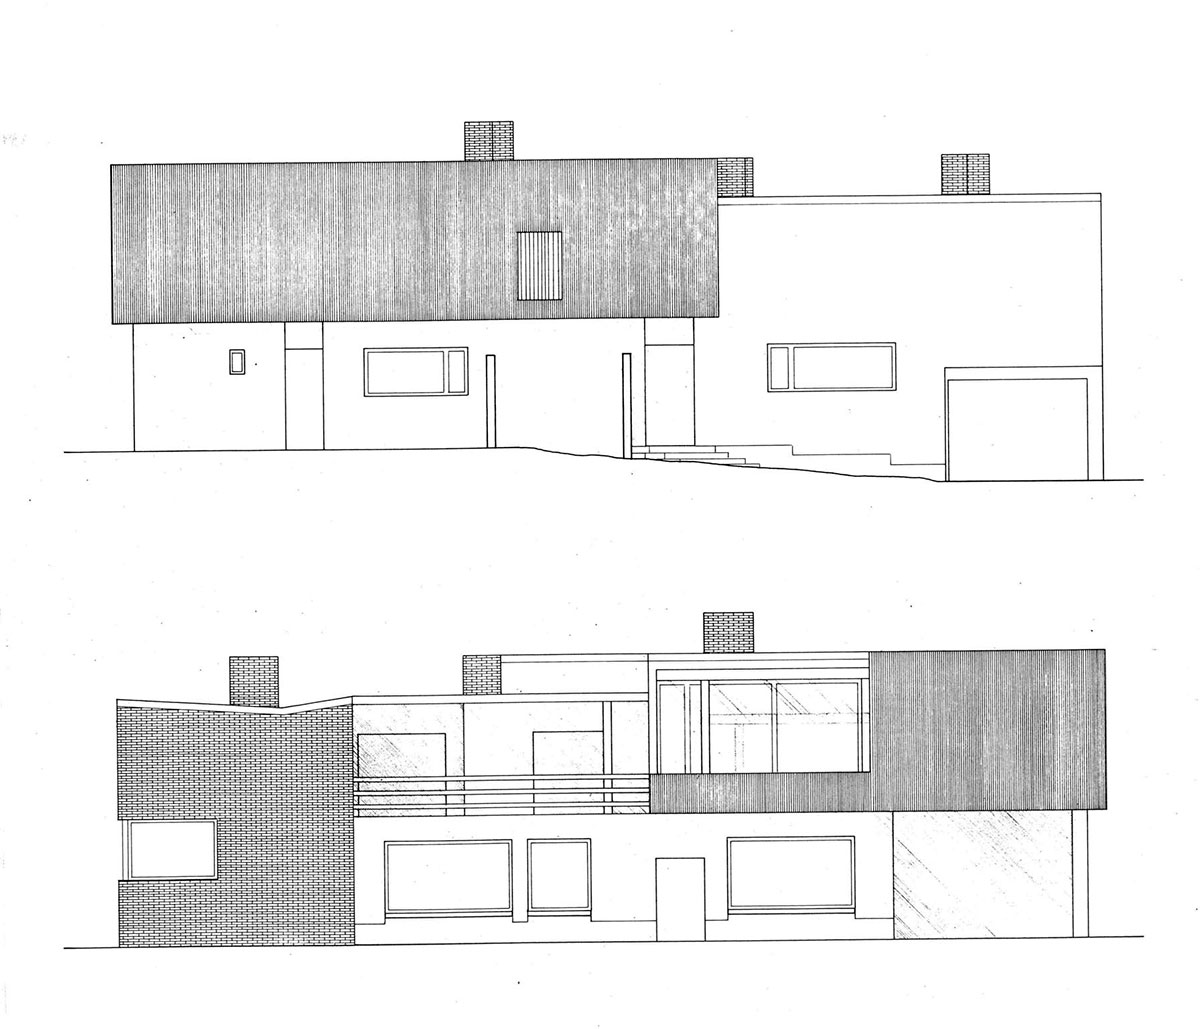 The Aalto House elevation